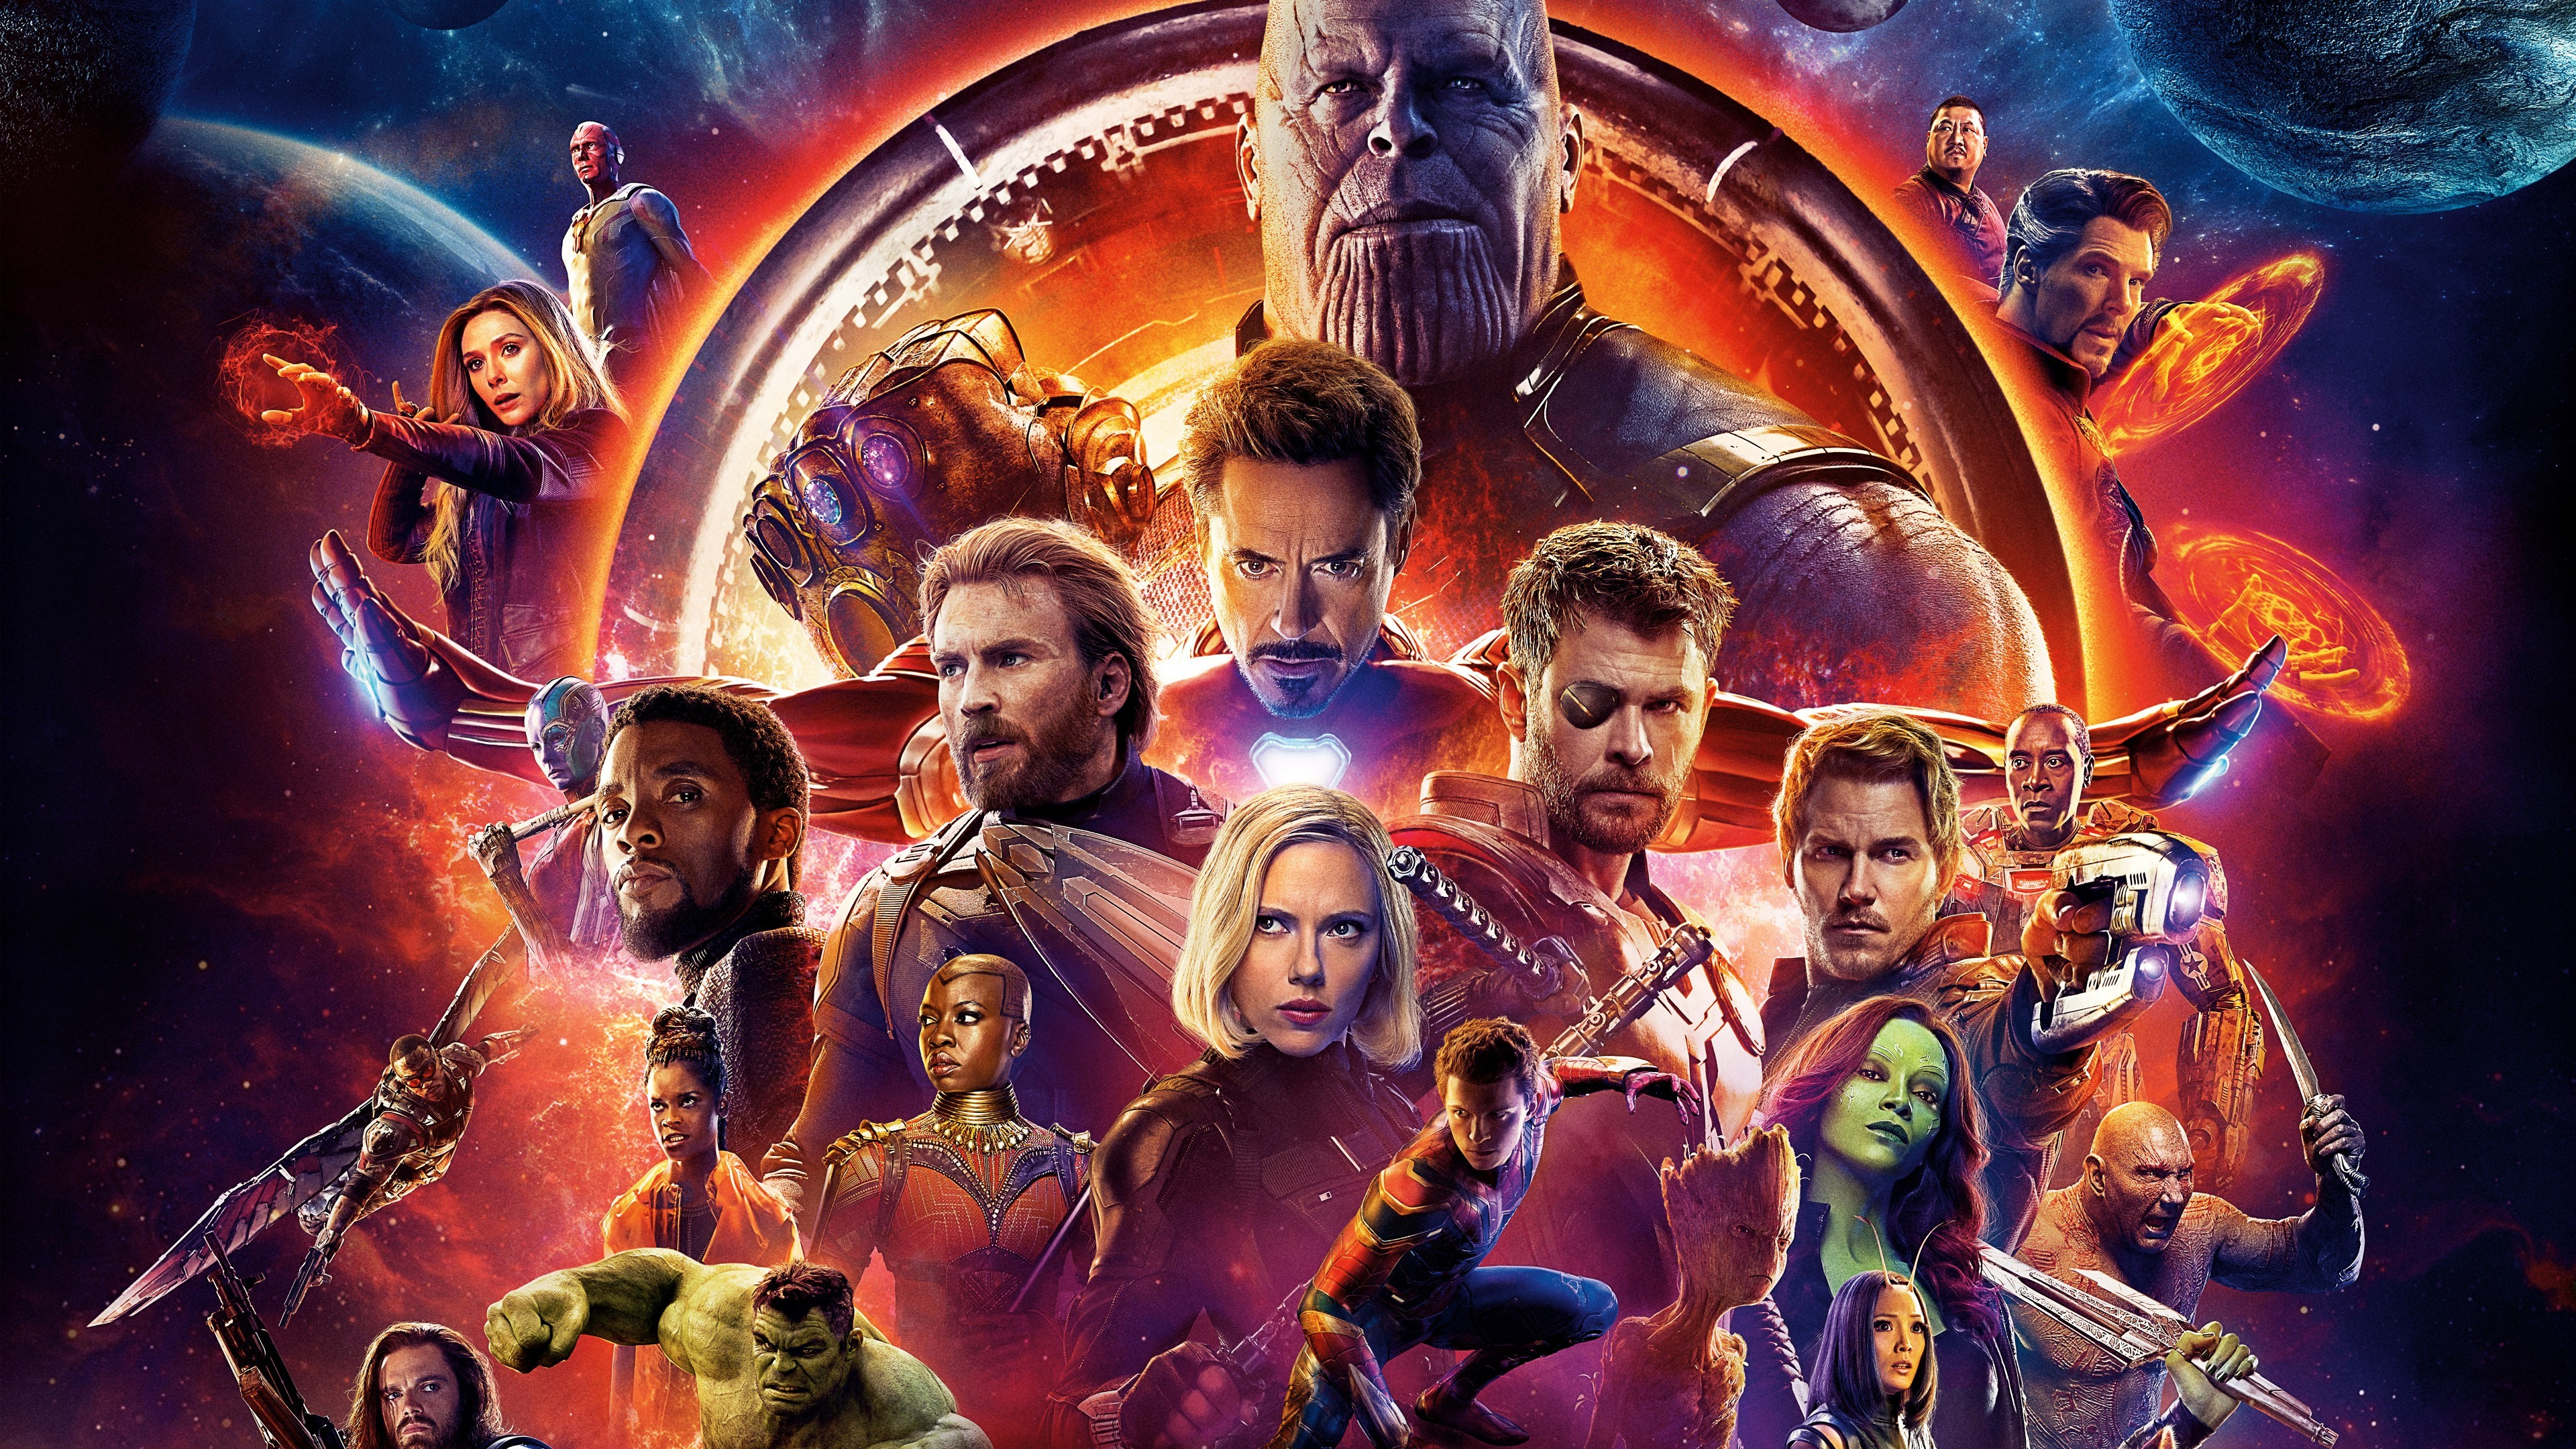 Res: 3840x2160, Avengers Infinity War Superhero and Villain 4K Wallpaper-